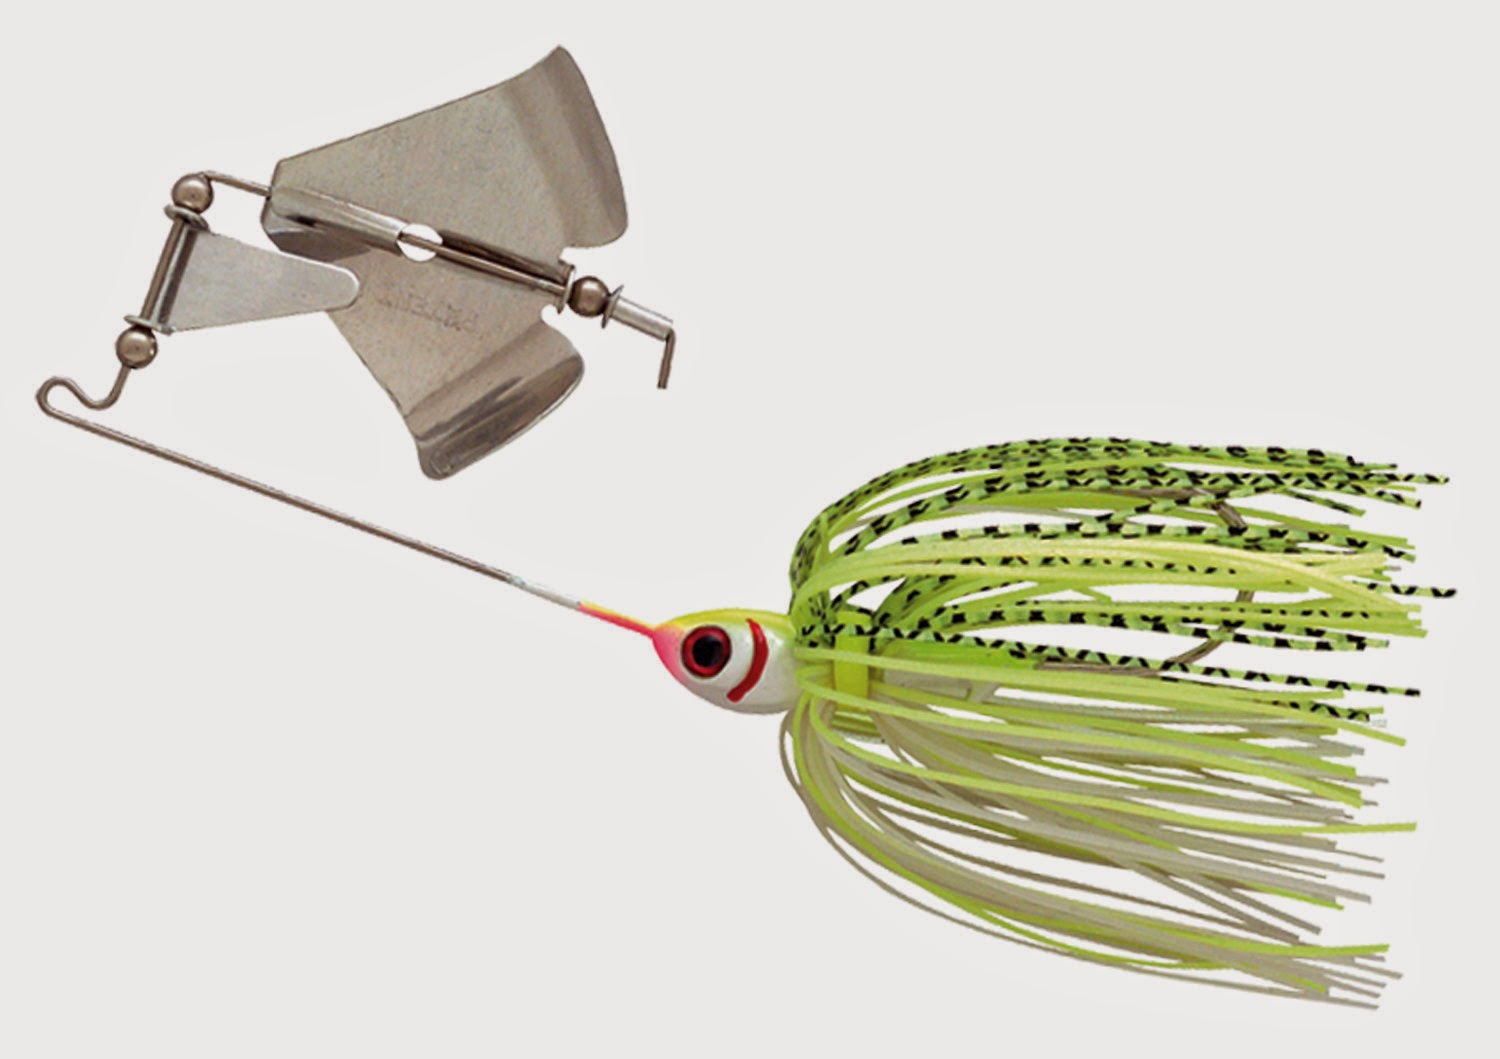 How To Make A Buzzbait Fishing Lure Bigtacklebox